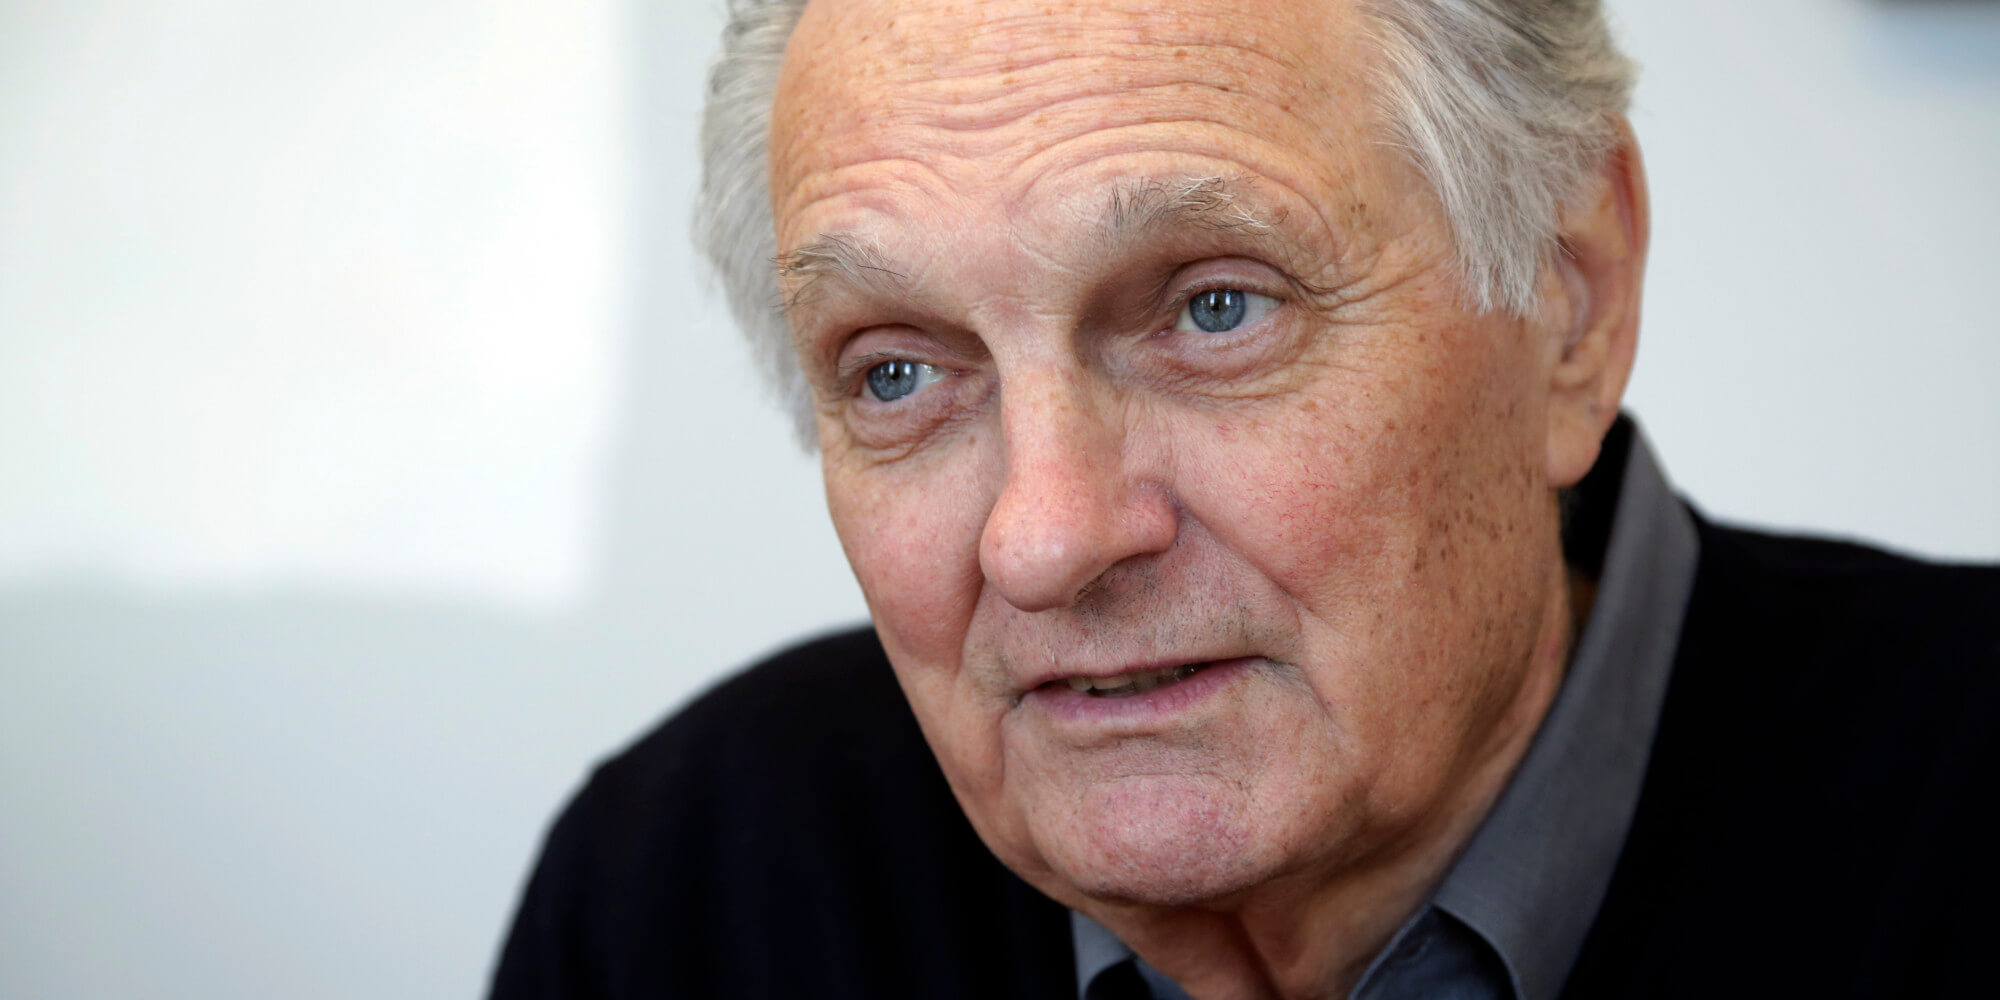 o ALAN ALDA facebook - Alan Alda Net Worth